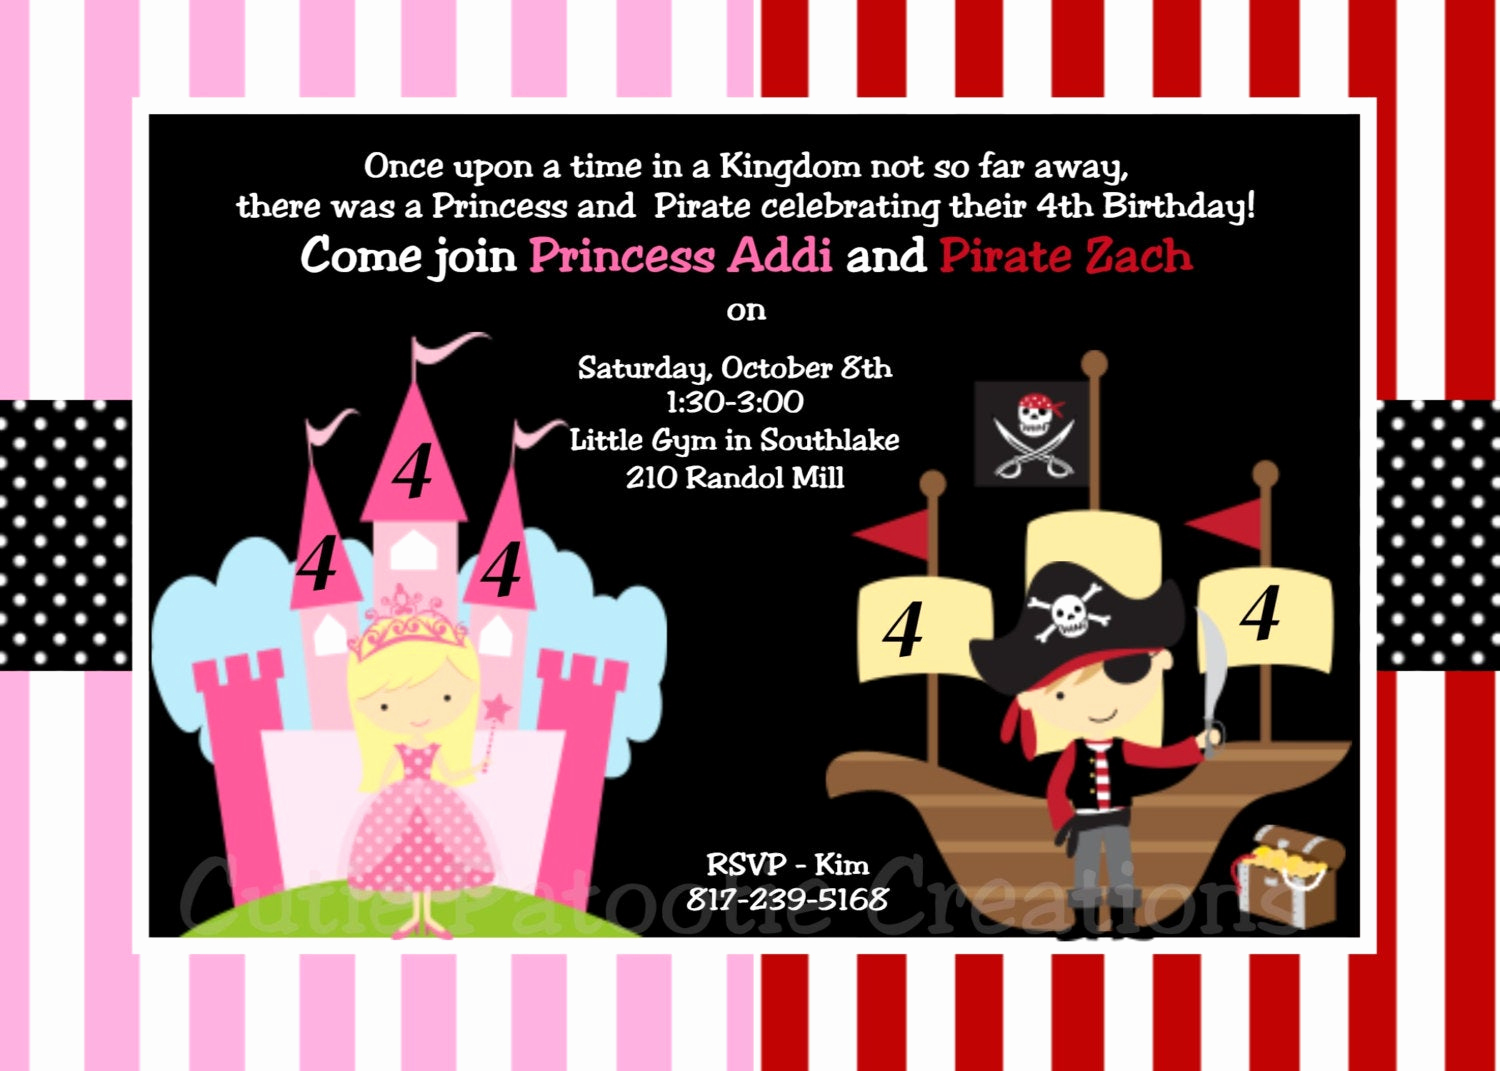 Princess and Pirate Invitation Fresh Princess and Pirate Birthday Invitation Princess by